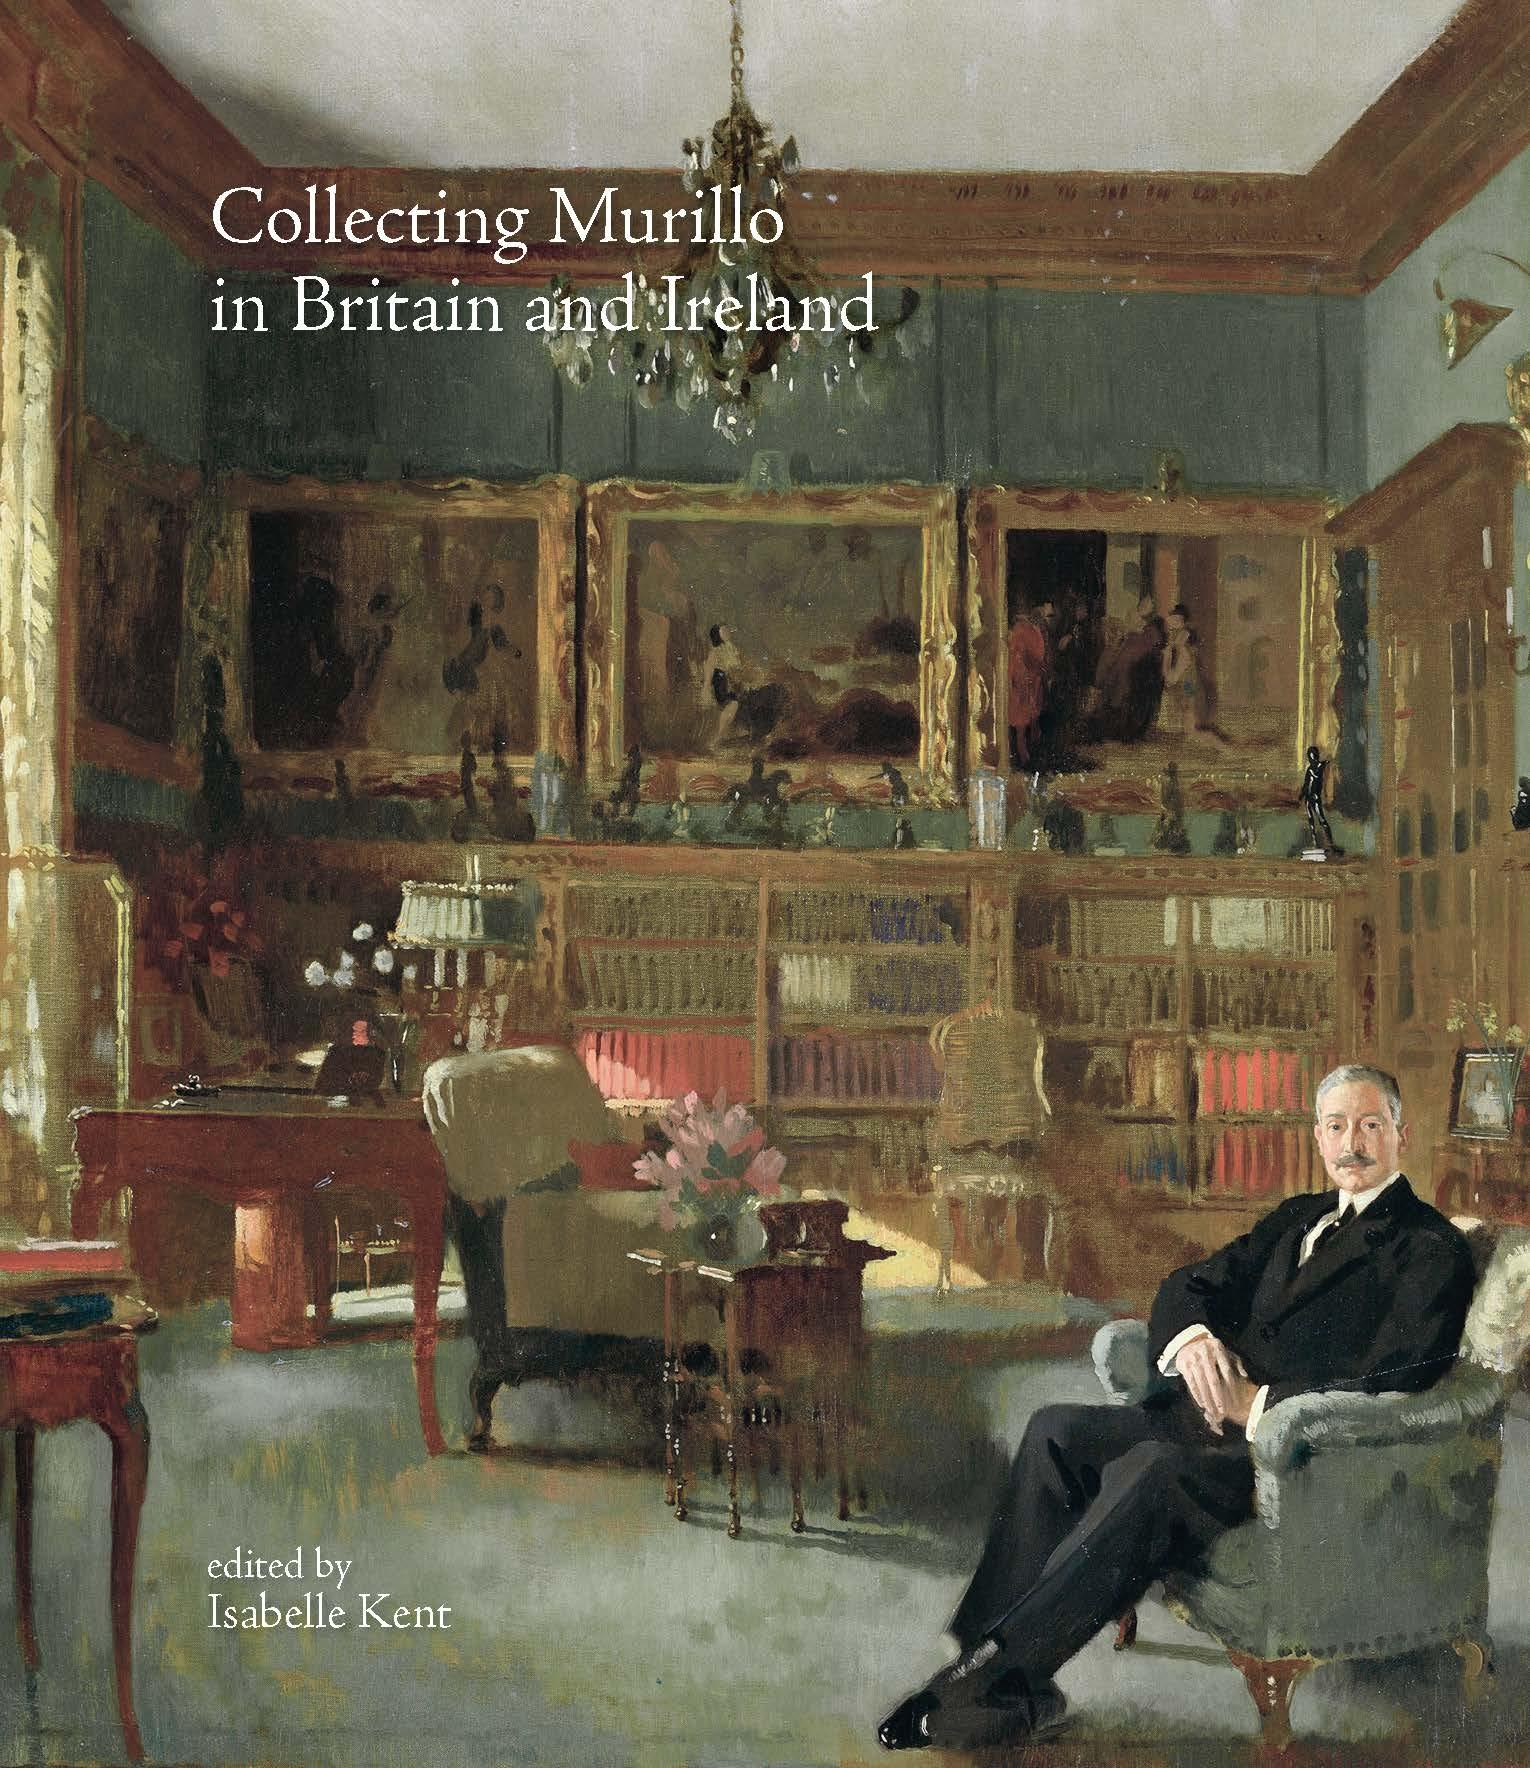 COLLECTING MURILLO IN BRITAIN AND IRELAND.